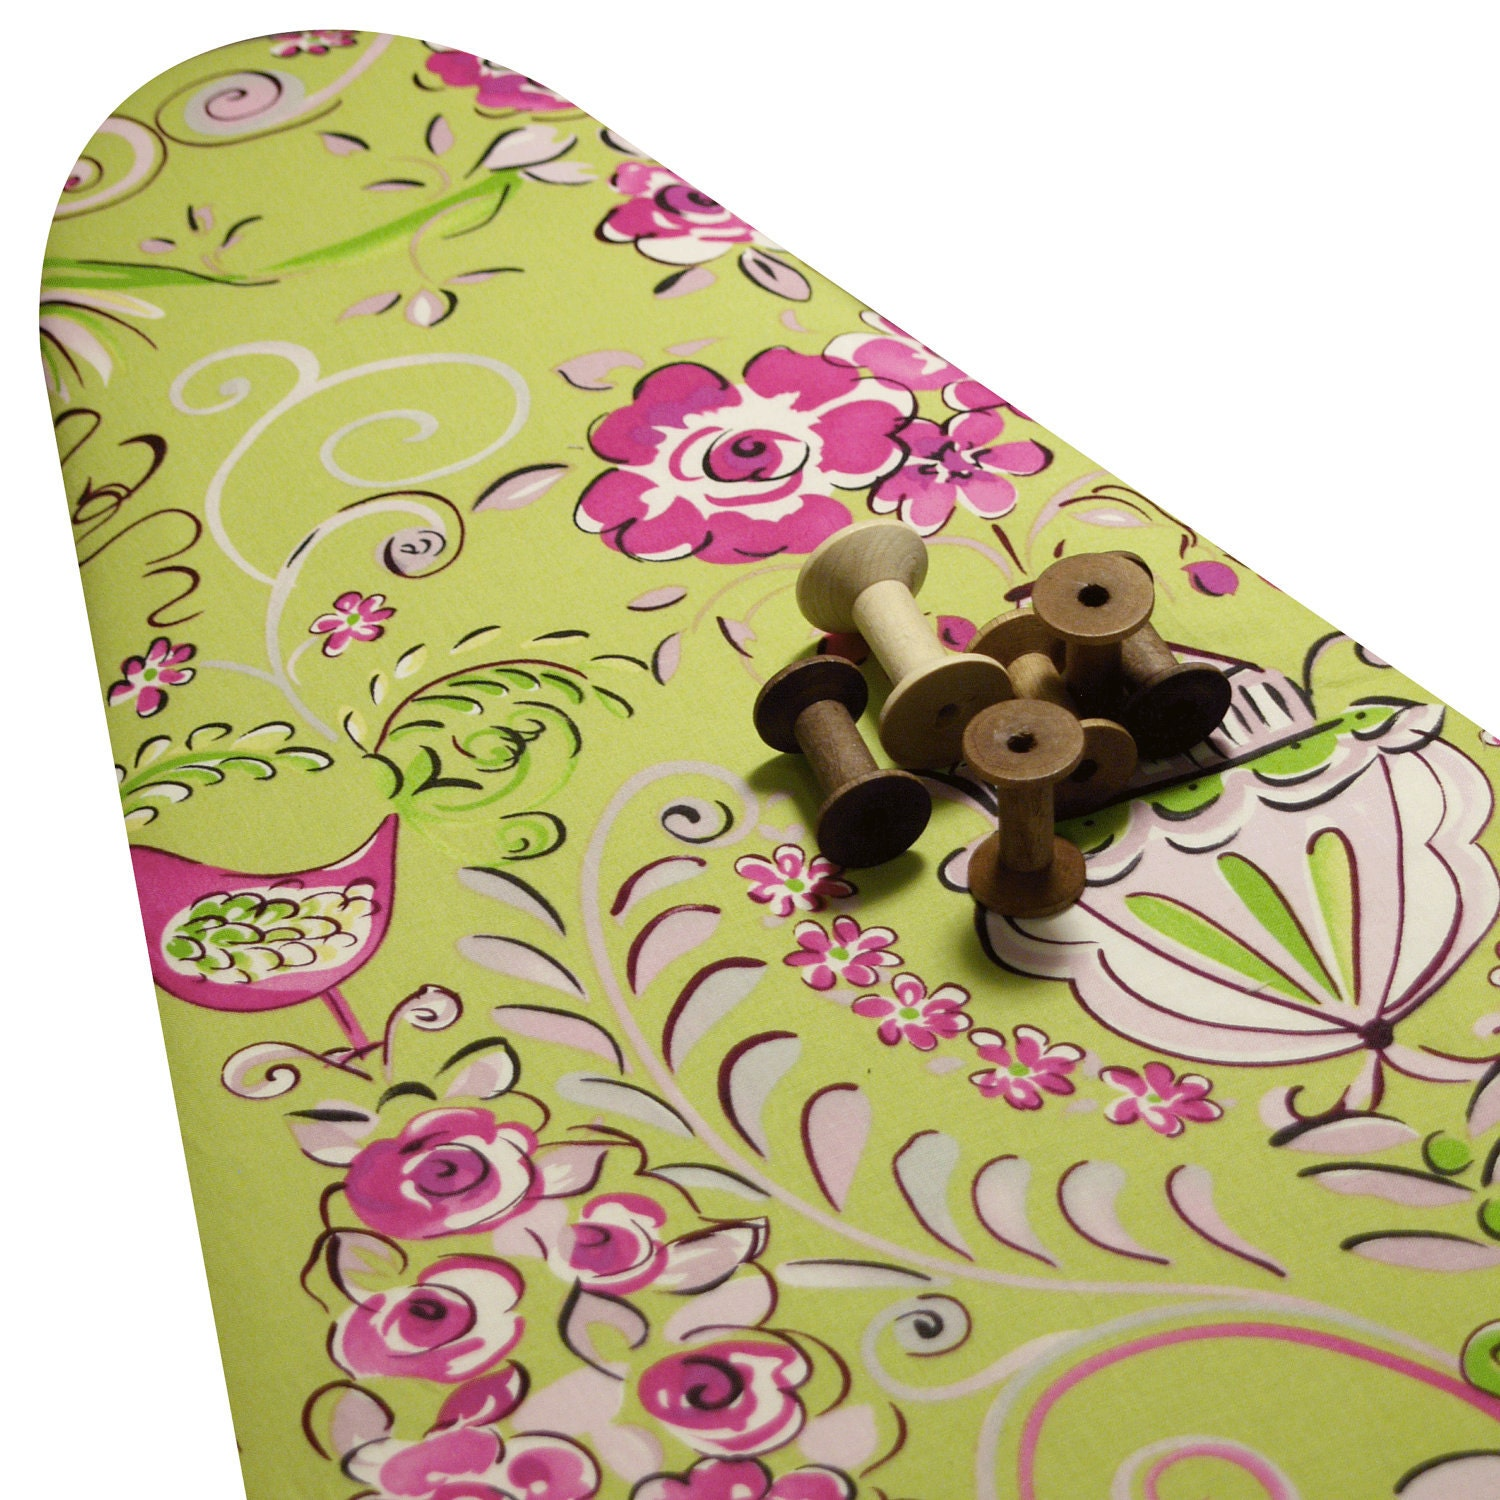 Padded ironing board cover made with dena designs tea garden for Dena designs tea garden fabric